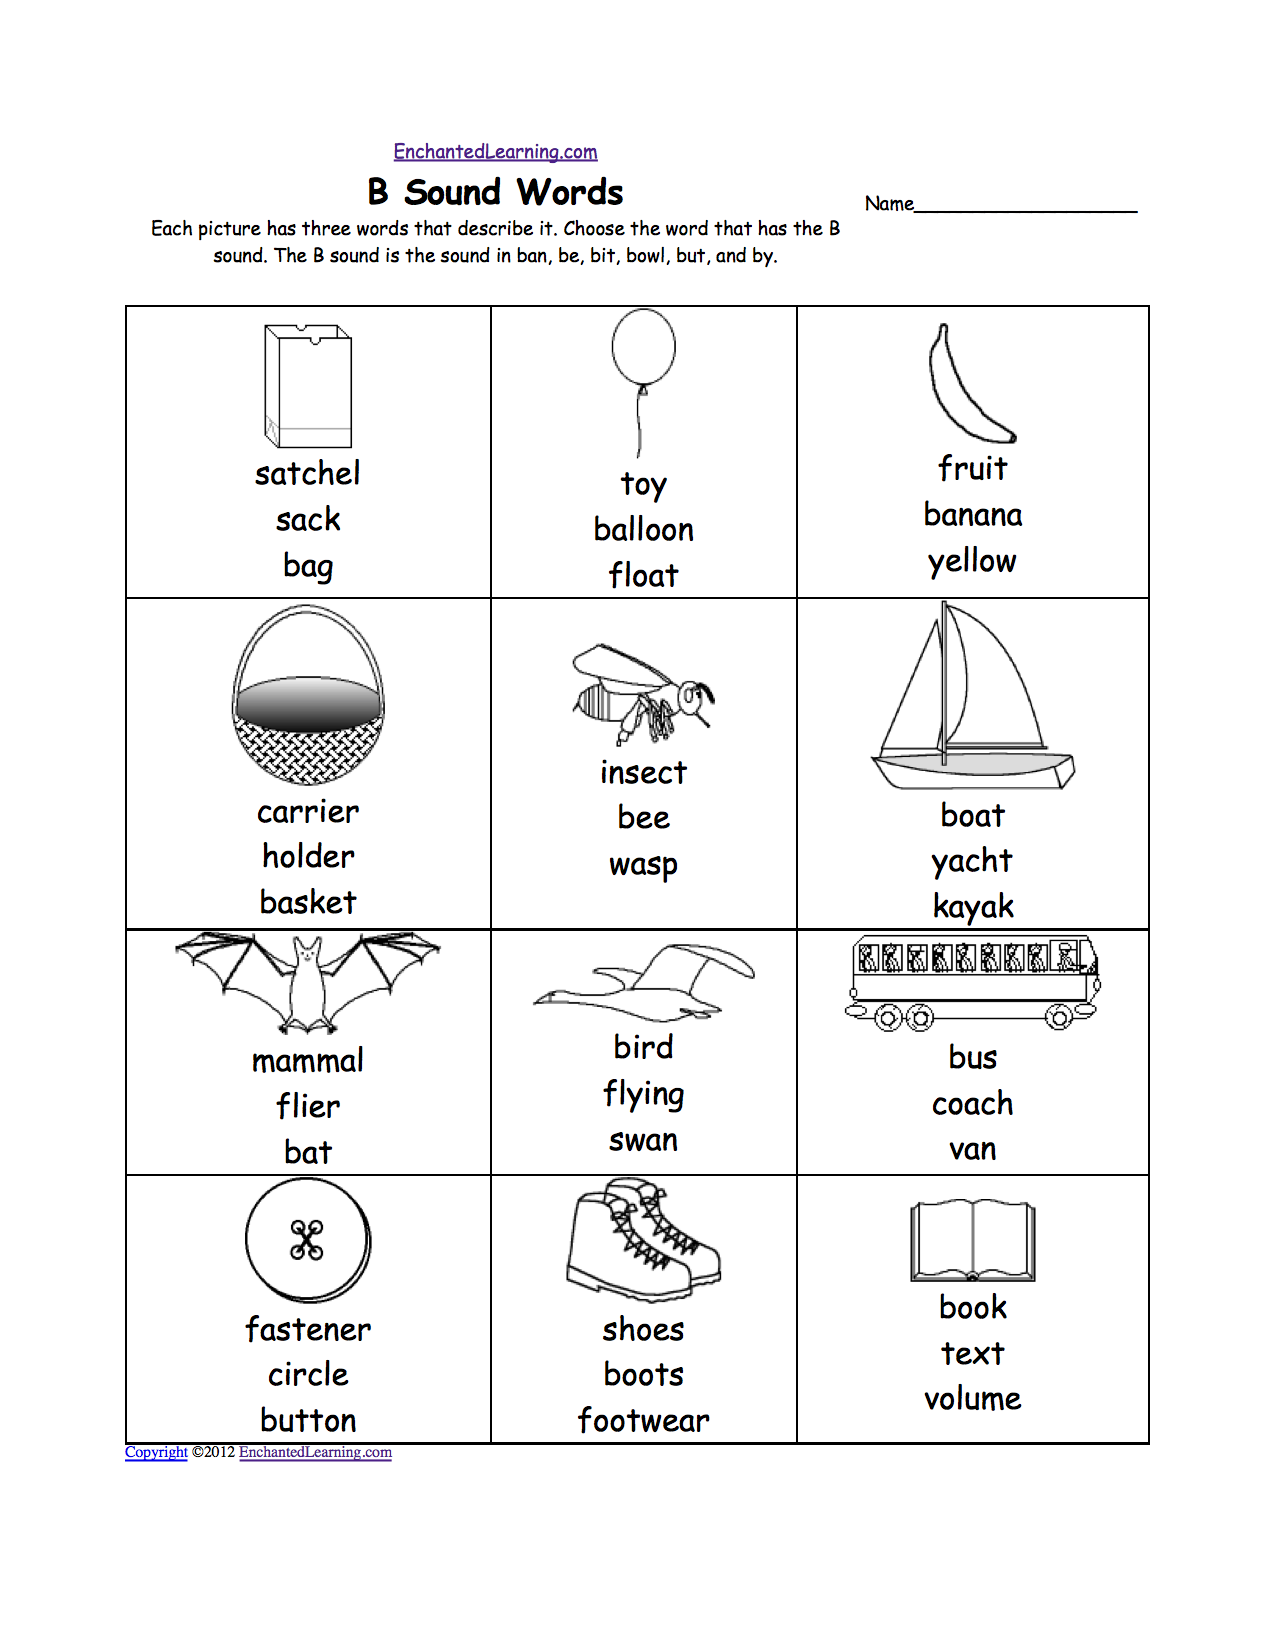 Aldiablosus  Marvellous Phonics Worksheets Multiple Choice Worksheets To Print  With Licious Quotbquot Sound Phonics Worksheet Multiple Choice Each Picture Has Three Words That Describe It Choose The Word That Has A Quotbquot Sound The Quotbquot Sound Is The Sound  With Charming Pilgrims Worksheets Also Graph Worksheets For Nd Grade In Addition Numbers  Worksheet And Polar Express Worksheet As Well As Th Grade Common Core Worksheets Additionally Factors Of A Number Worksheet From Enchantedlearningcom With Aldiablosus  Licious Phonics Worksheets Multiple Choice Worksheets To Print  With Charming Quotbquot Sound Phonics Worksheet Multiple Choice Each Picture Has Three Words That Describe It Choose The Word That Has A Quotbquot Sound The Quotbquot Sound Is The Sound  And Marvellous Pilgrims Worksheets Also Graph Worksheets For Nd Grade In Addition Numbers  Worksheet From Enchantedlearningcom